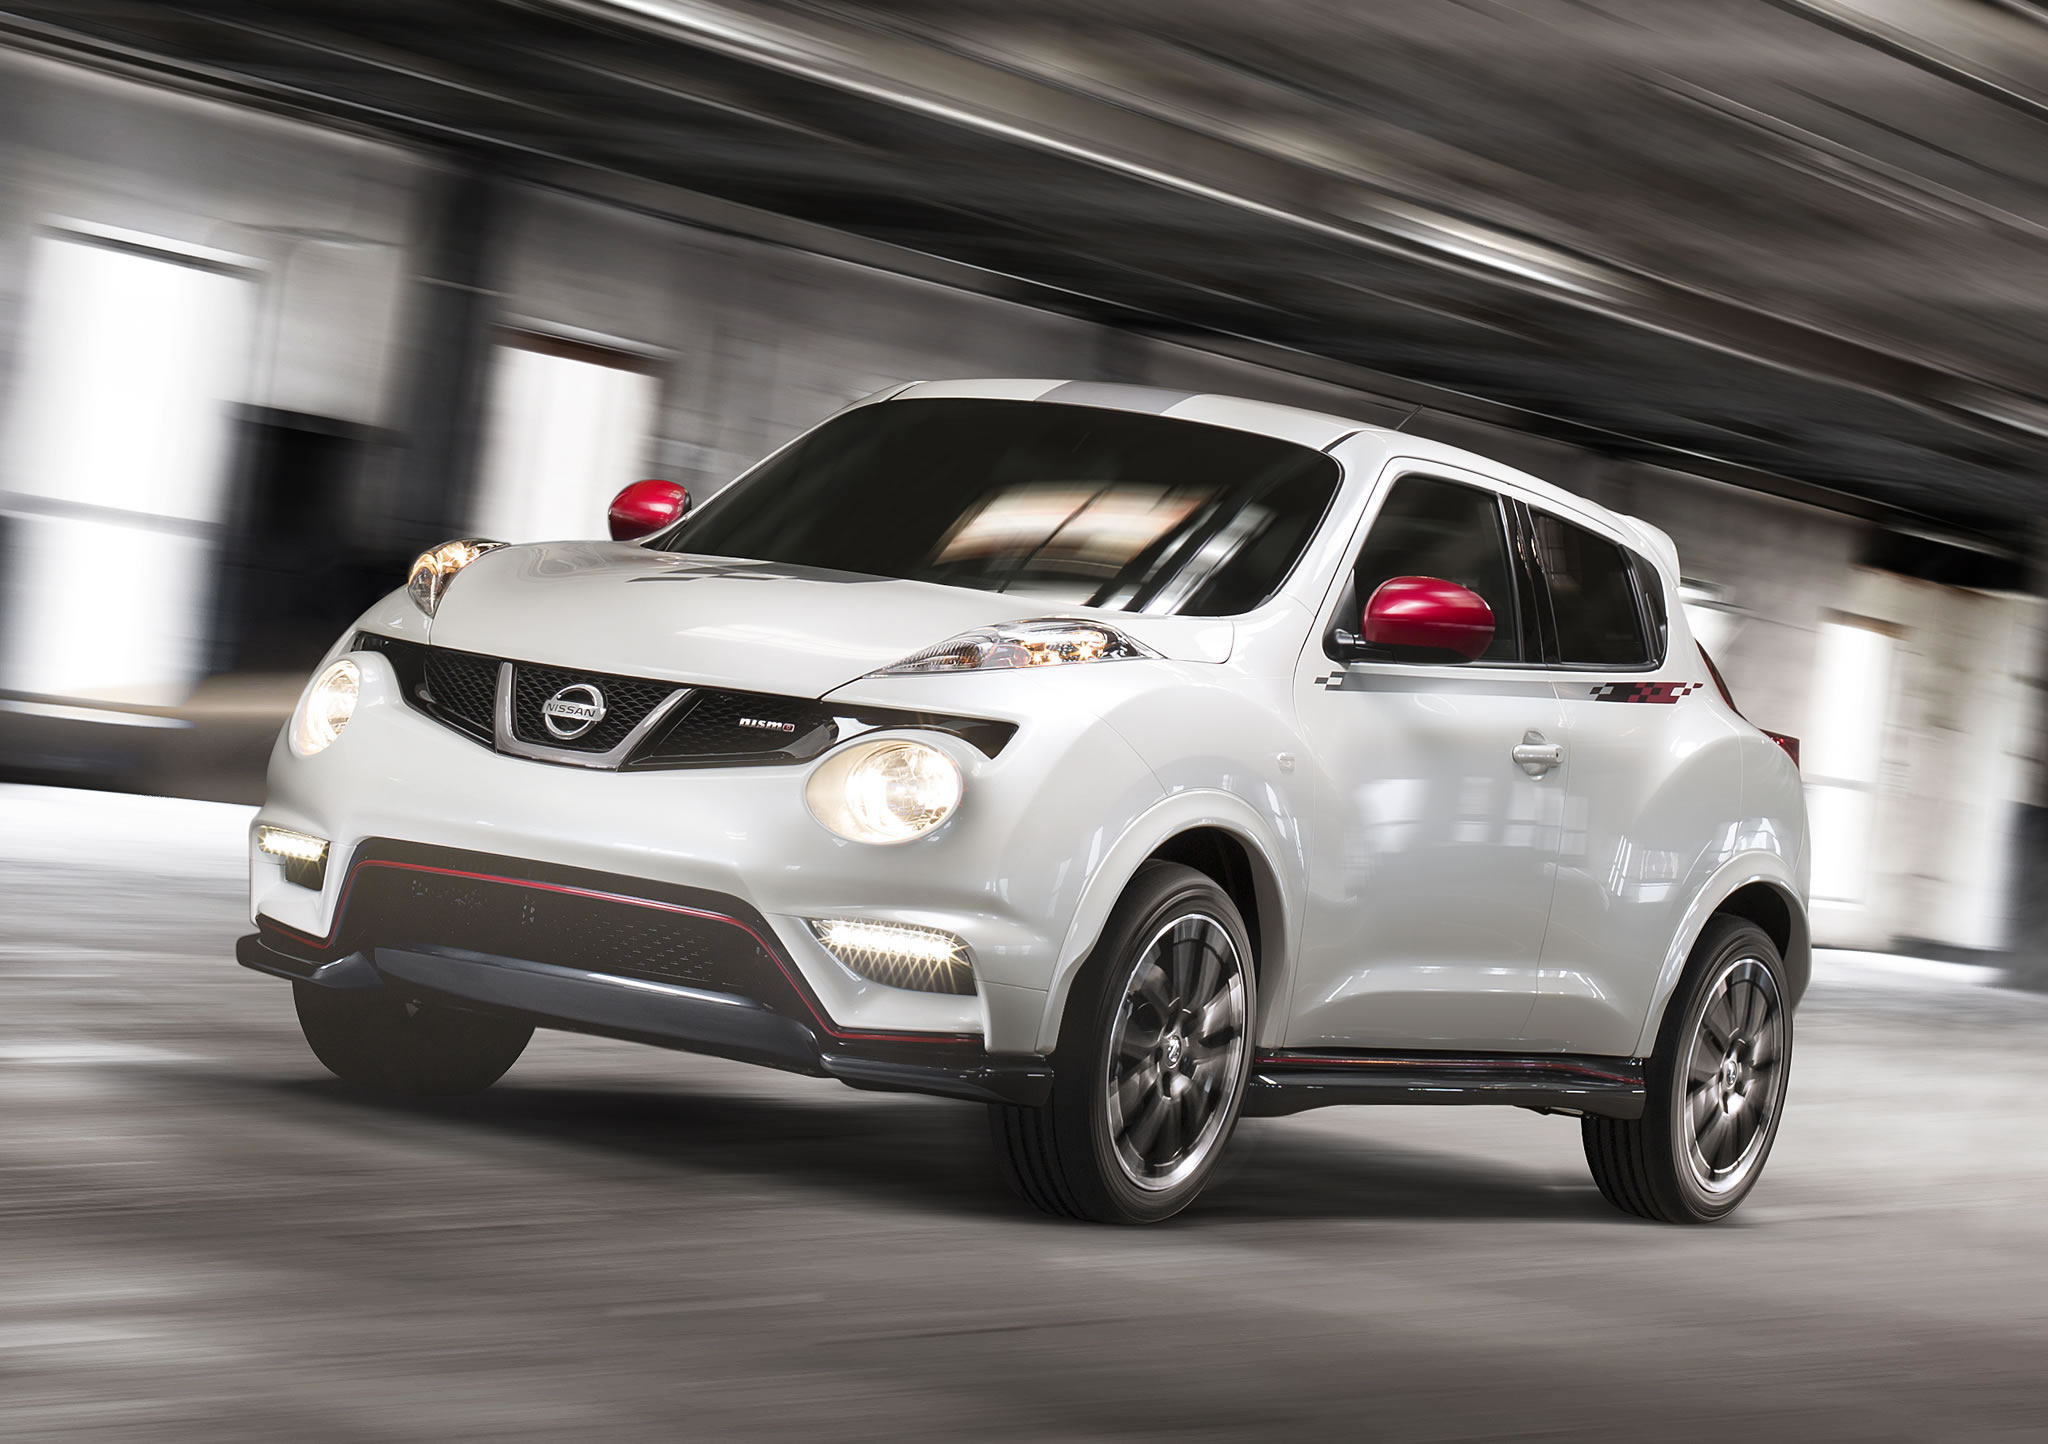 2014 Nissan Juke Nismo Front Photo Pearl White Color